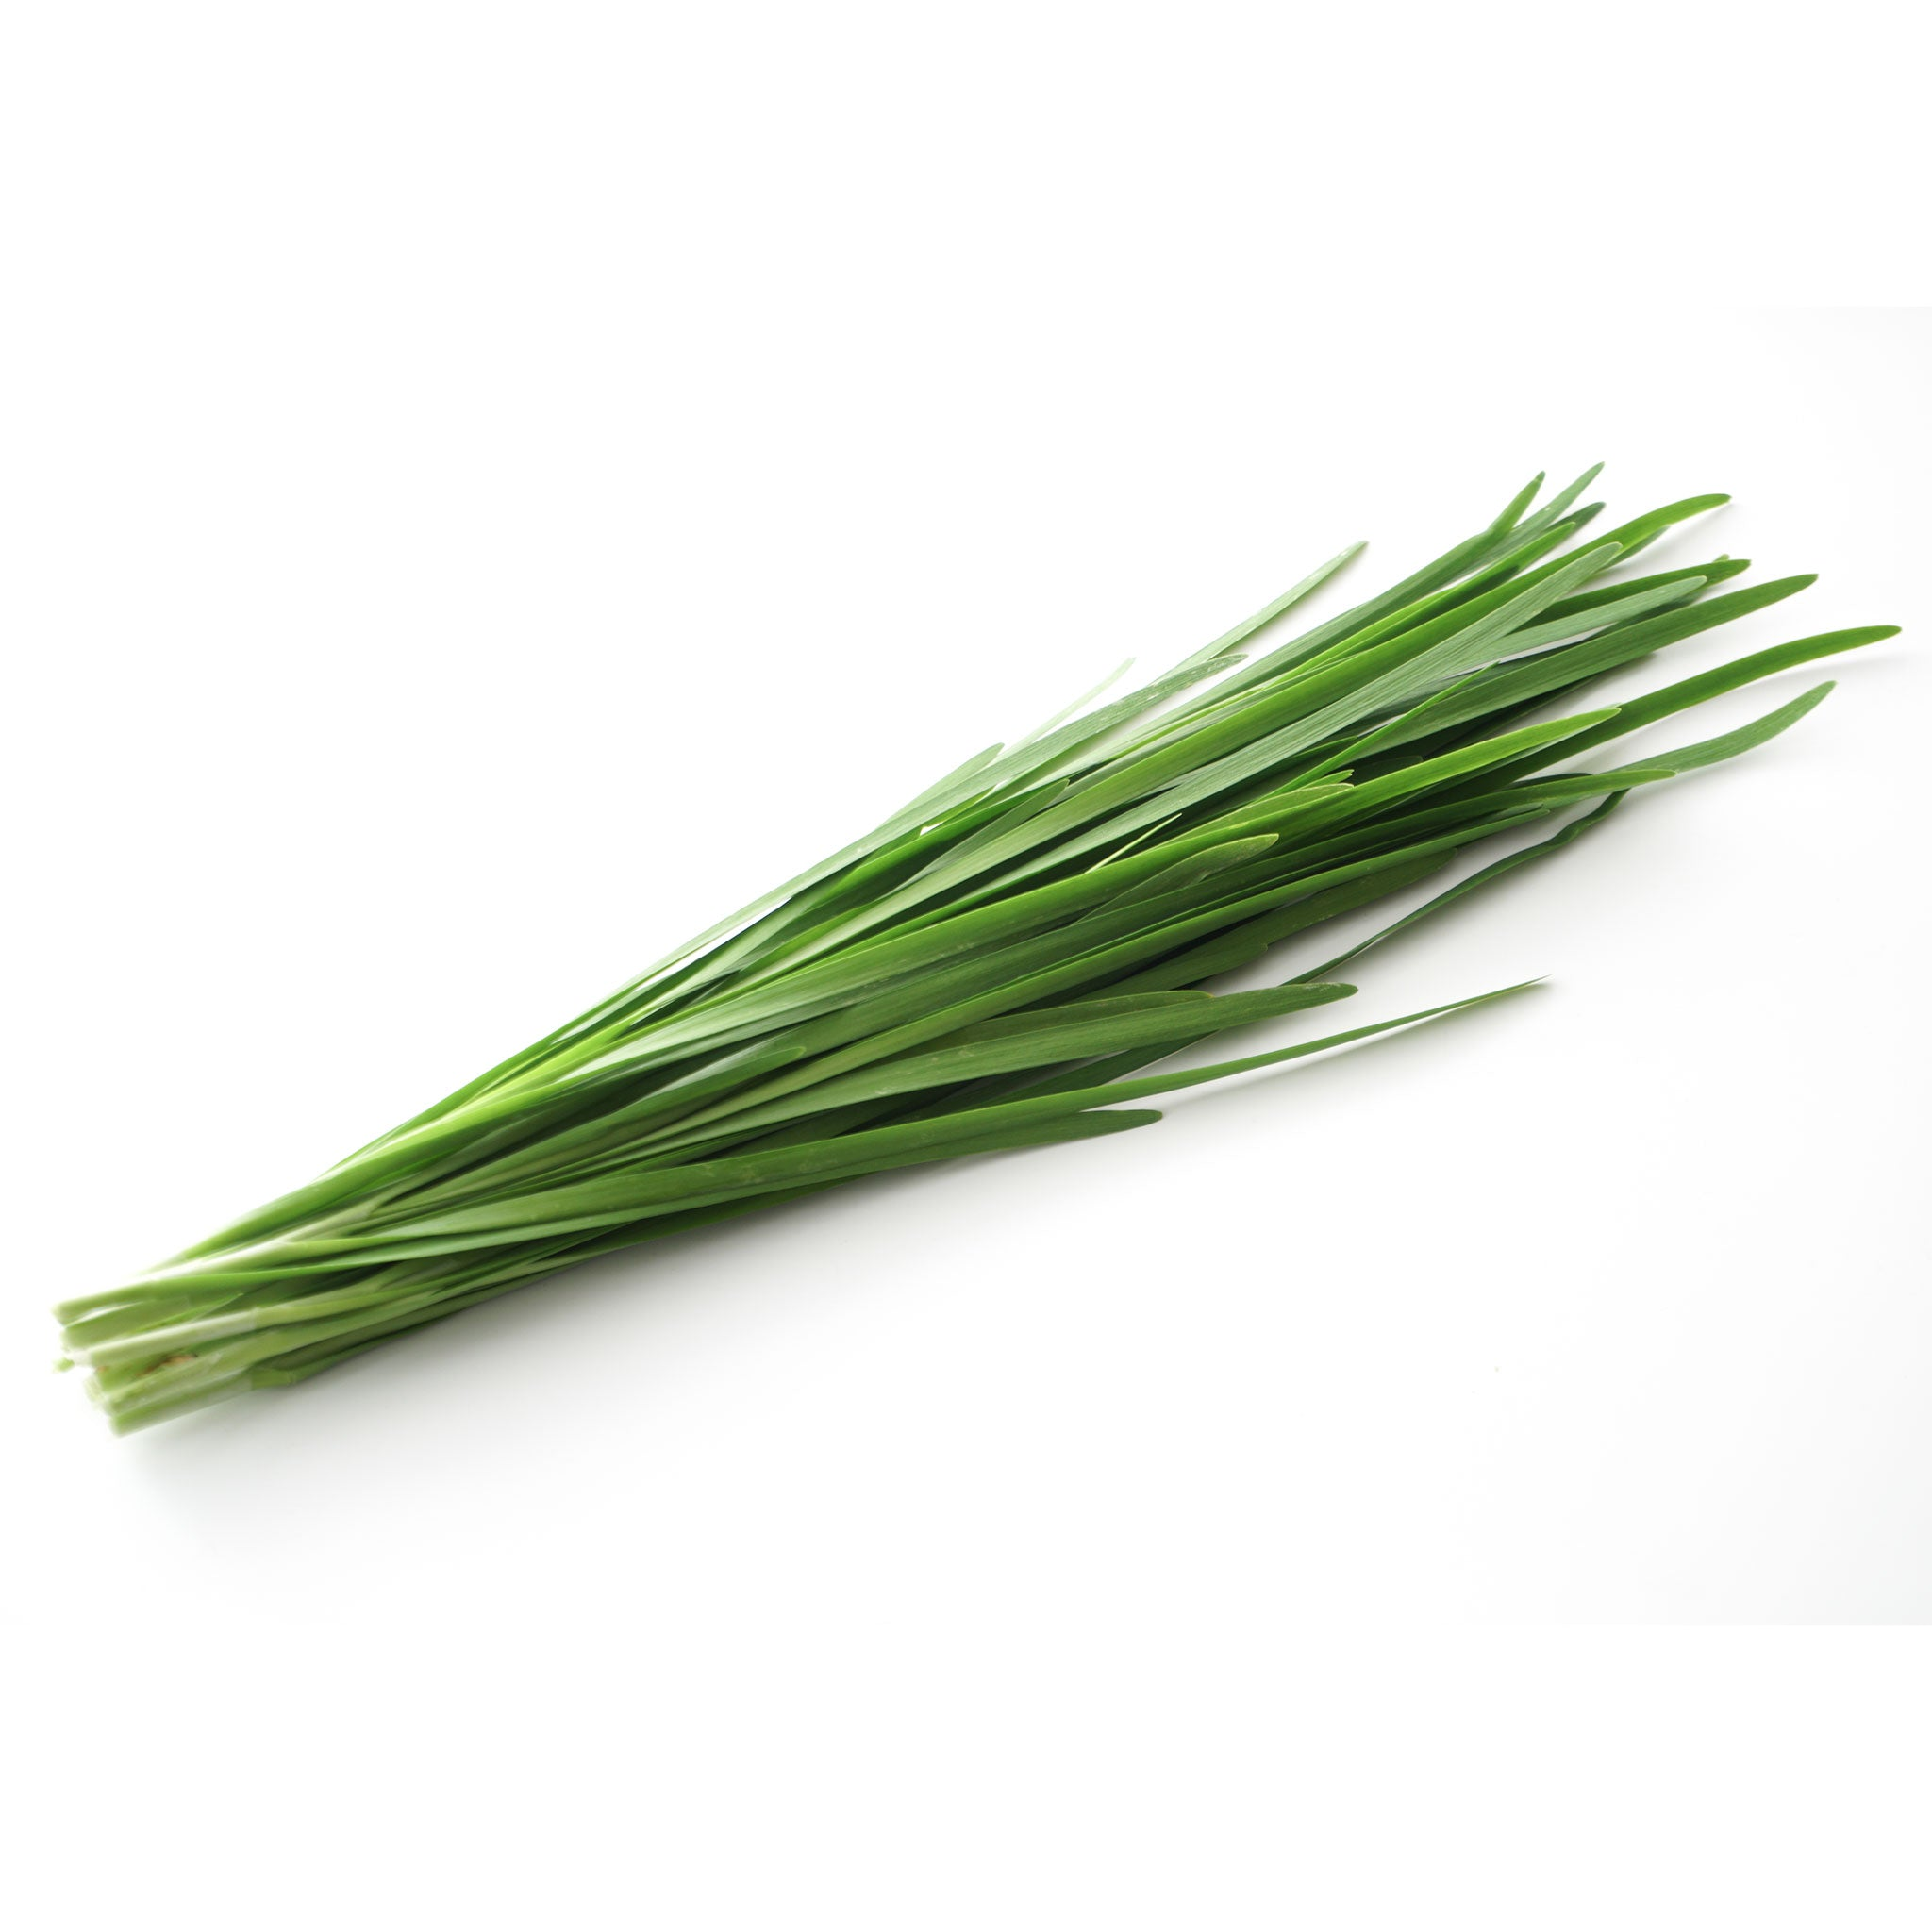 Chinese Chives (Kow Choi) 200g - Imported weekly from Thailand